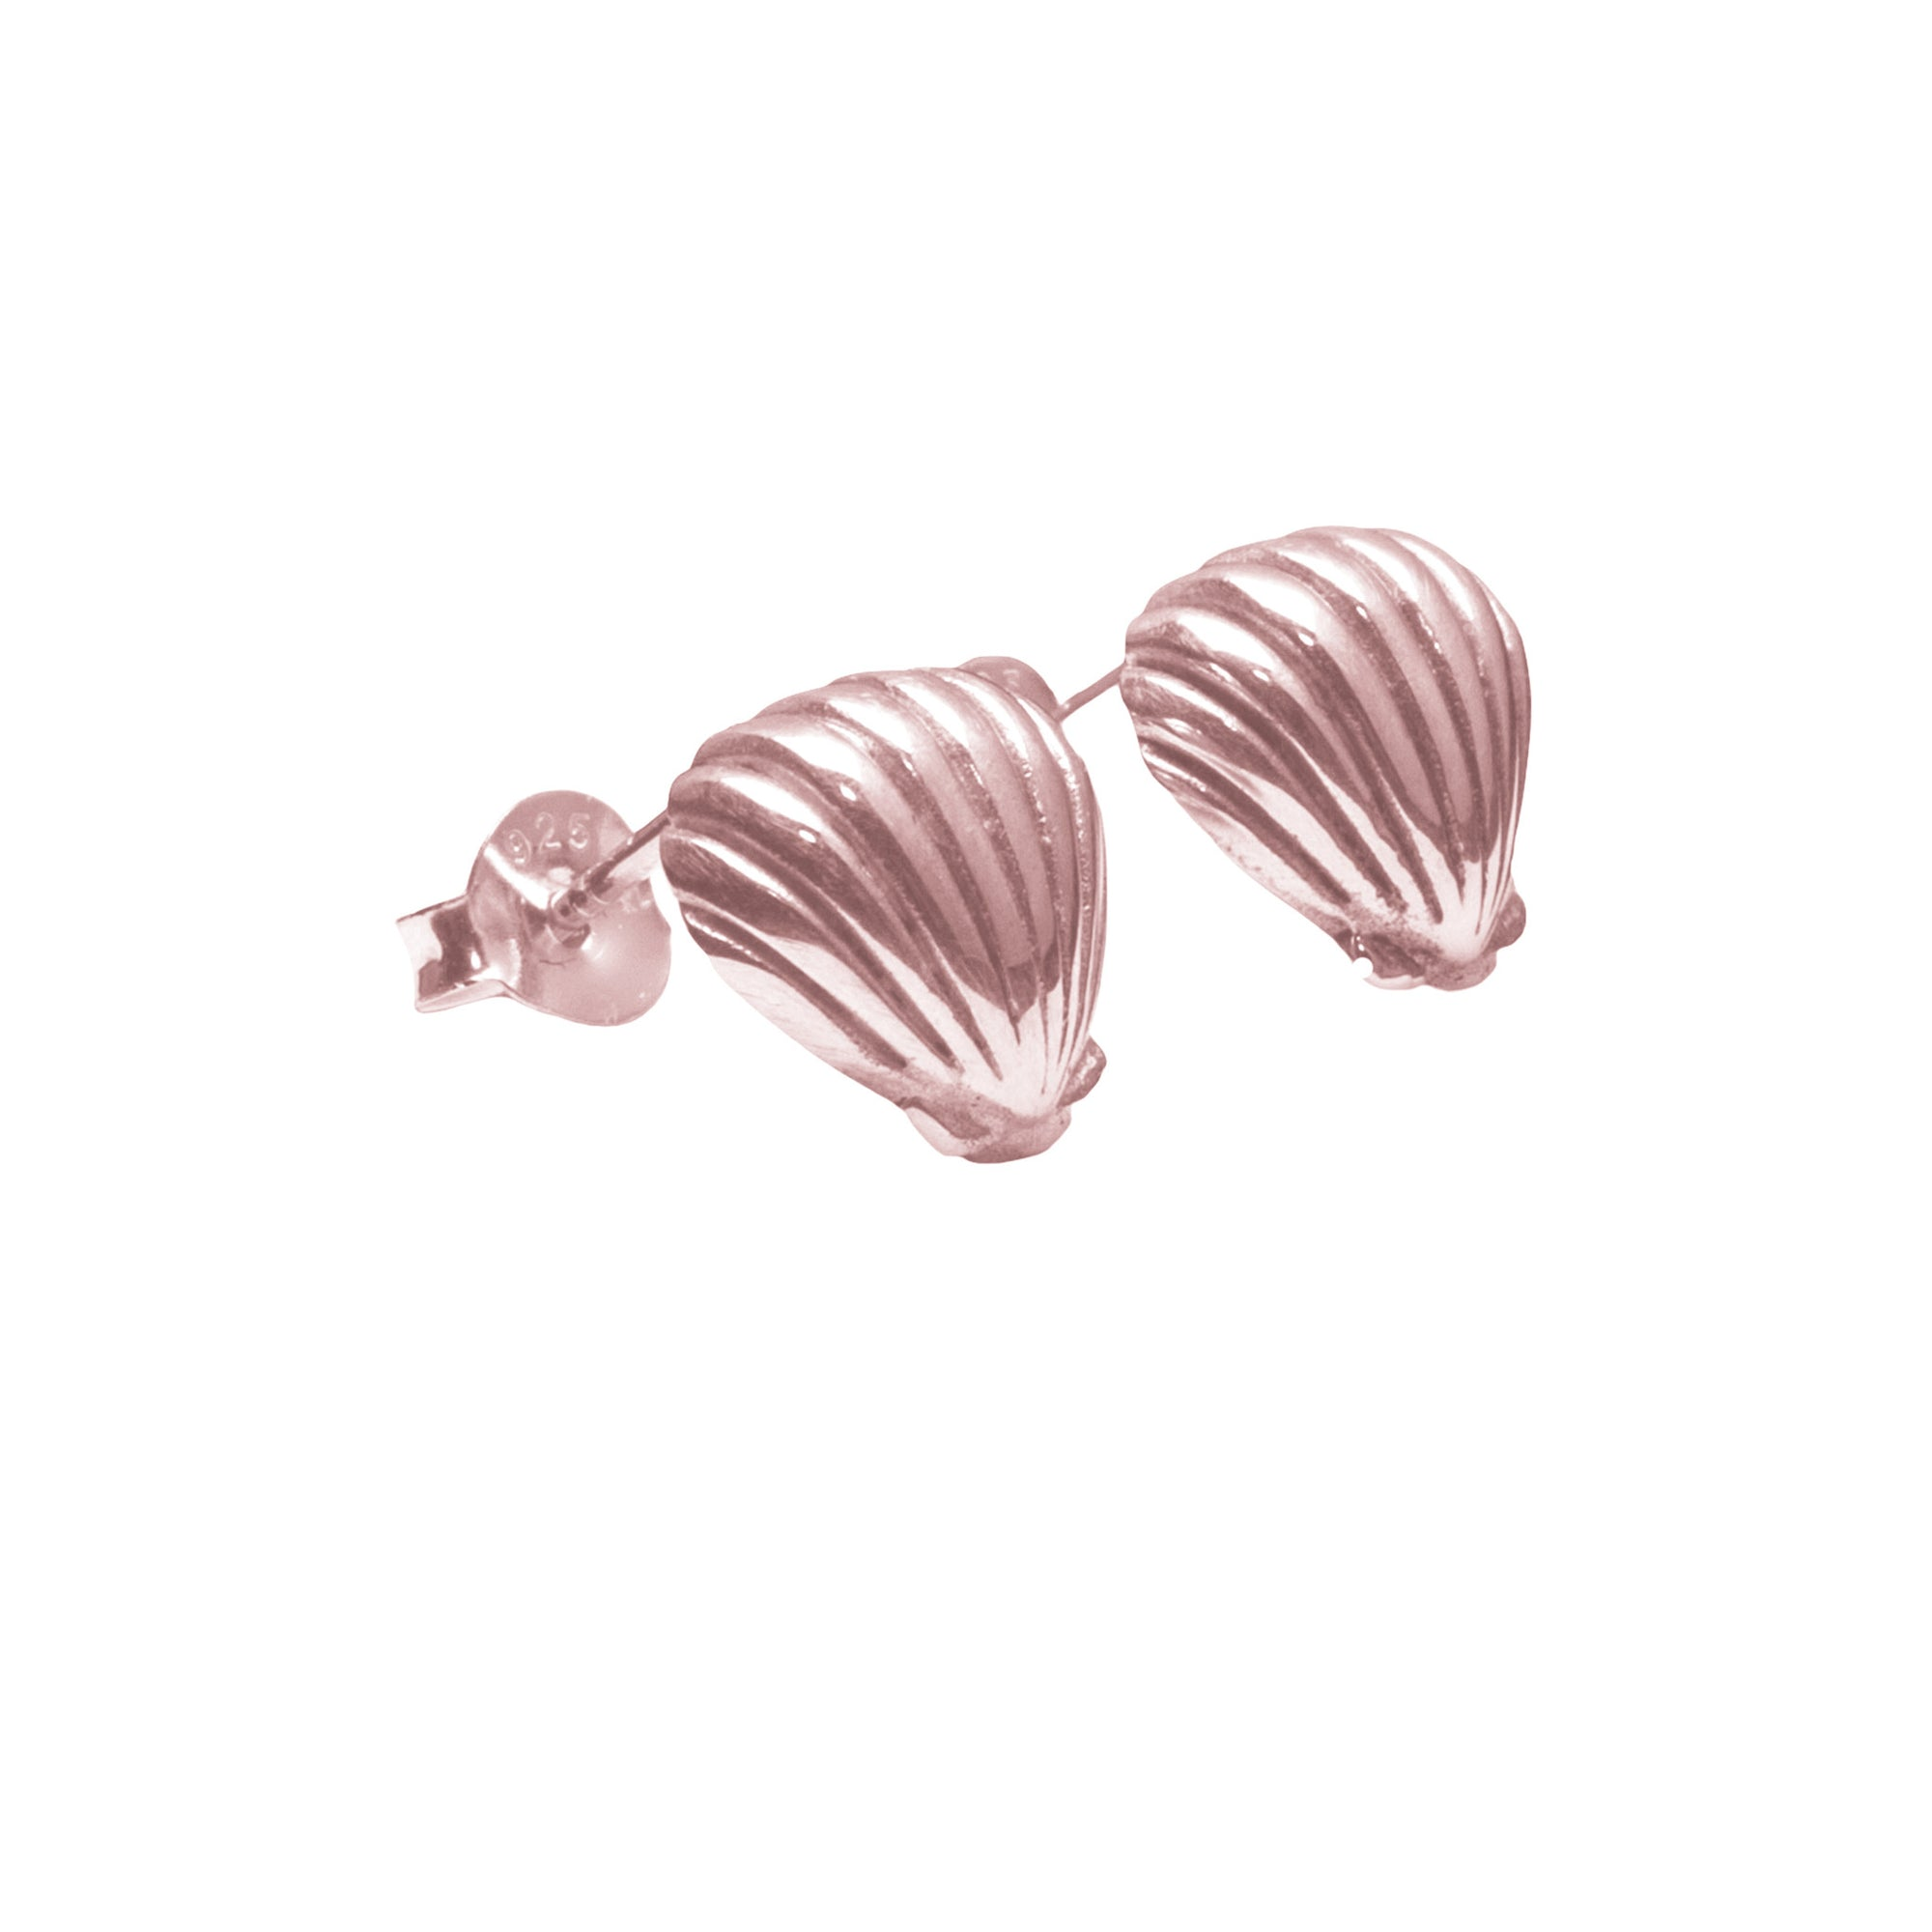 La Luna Rose Shell Charm - Rose Gold